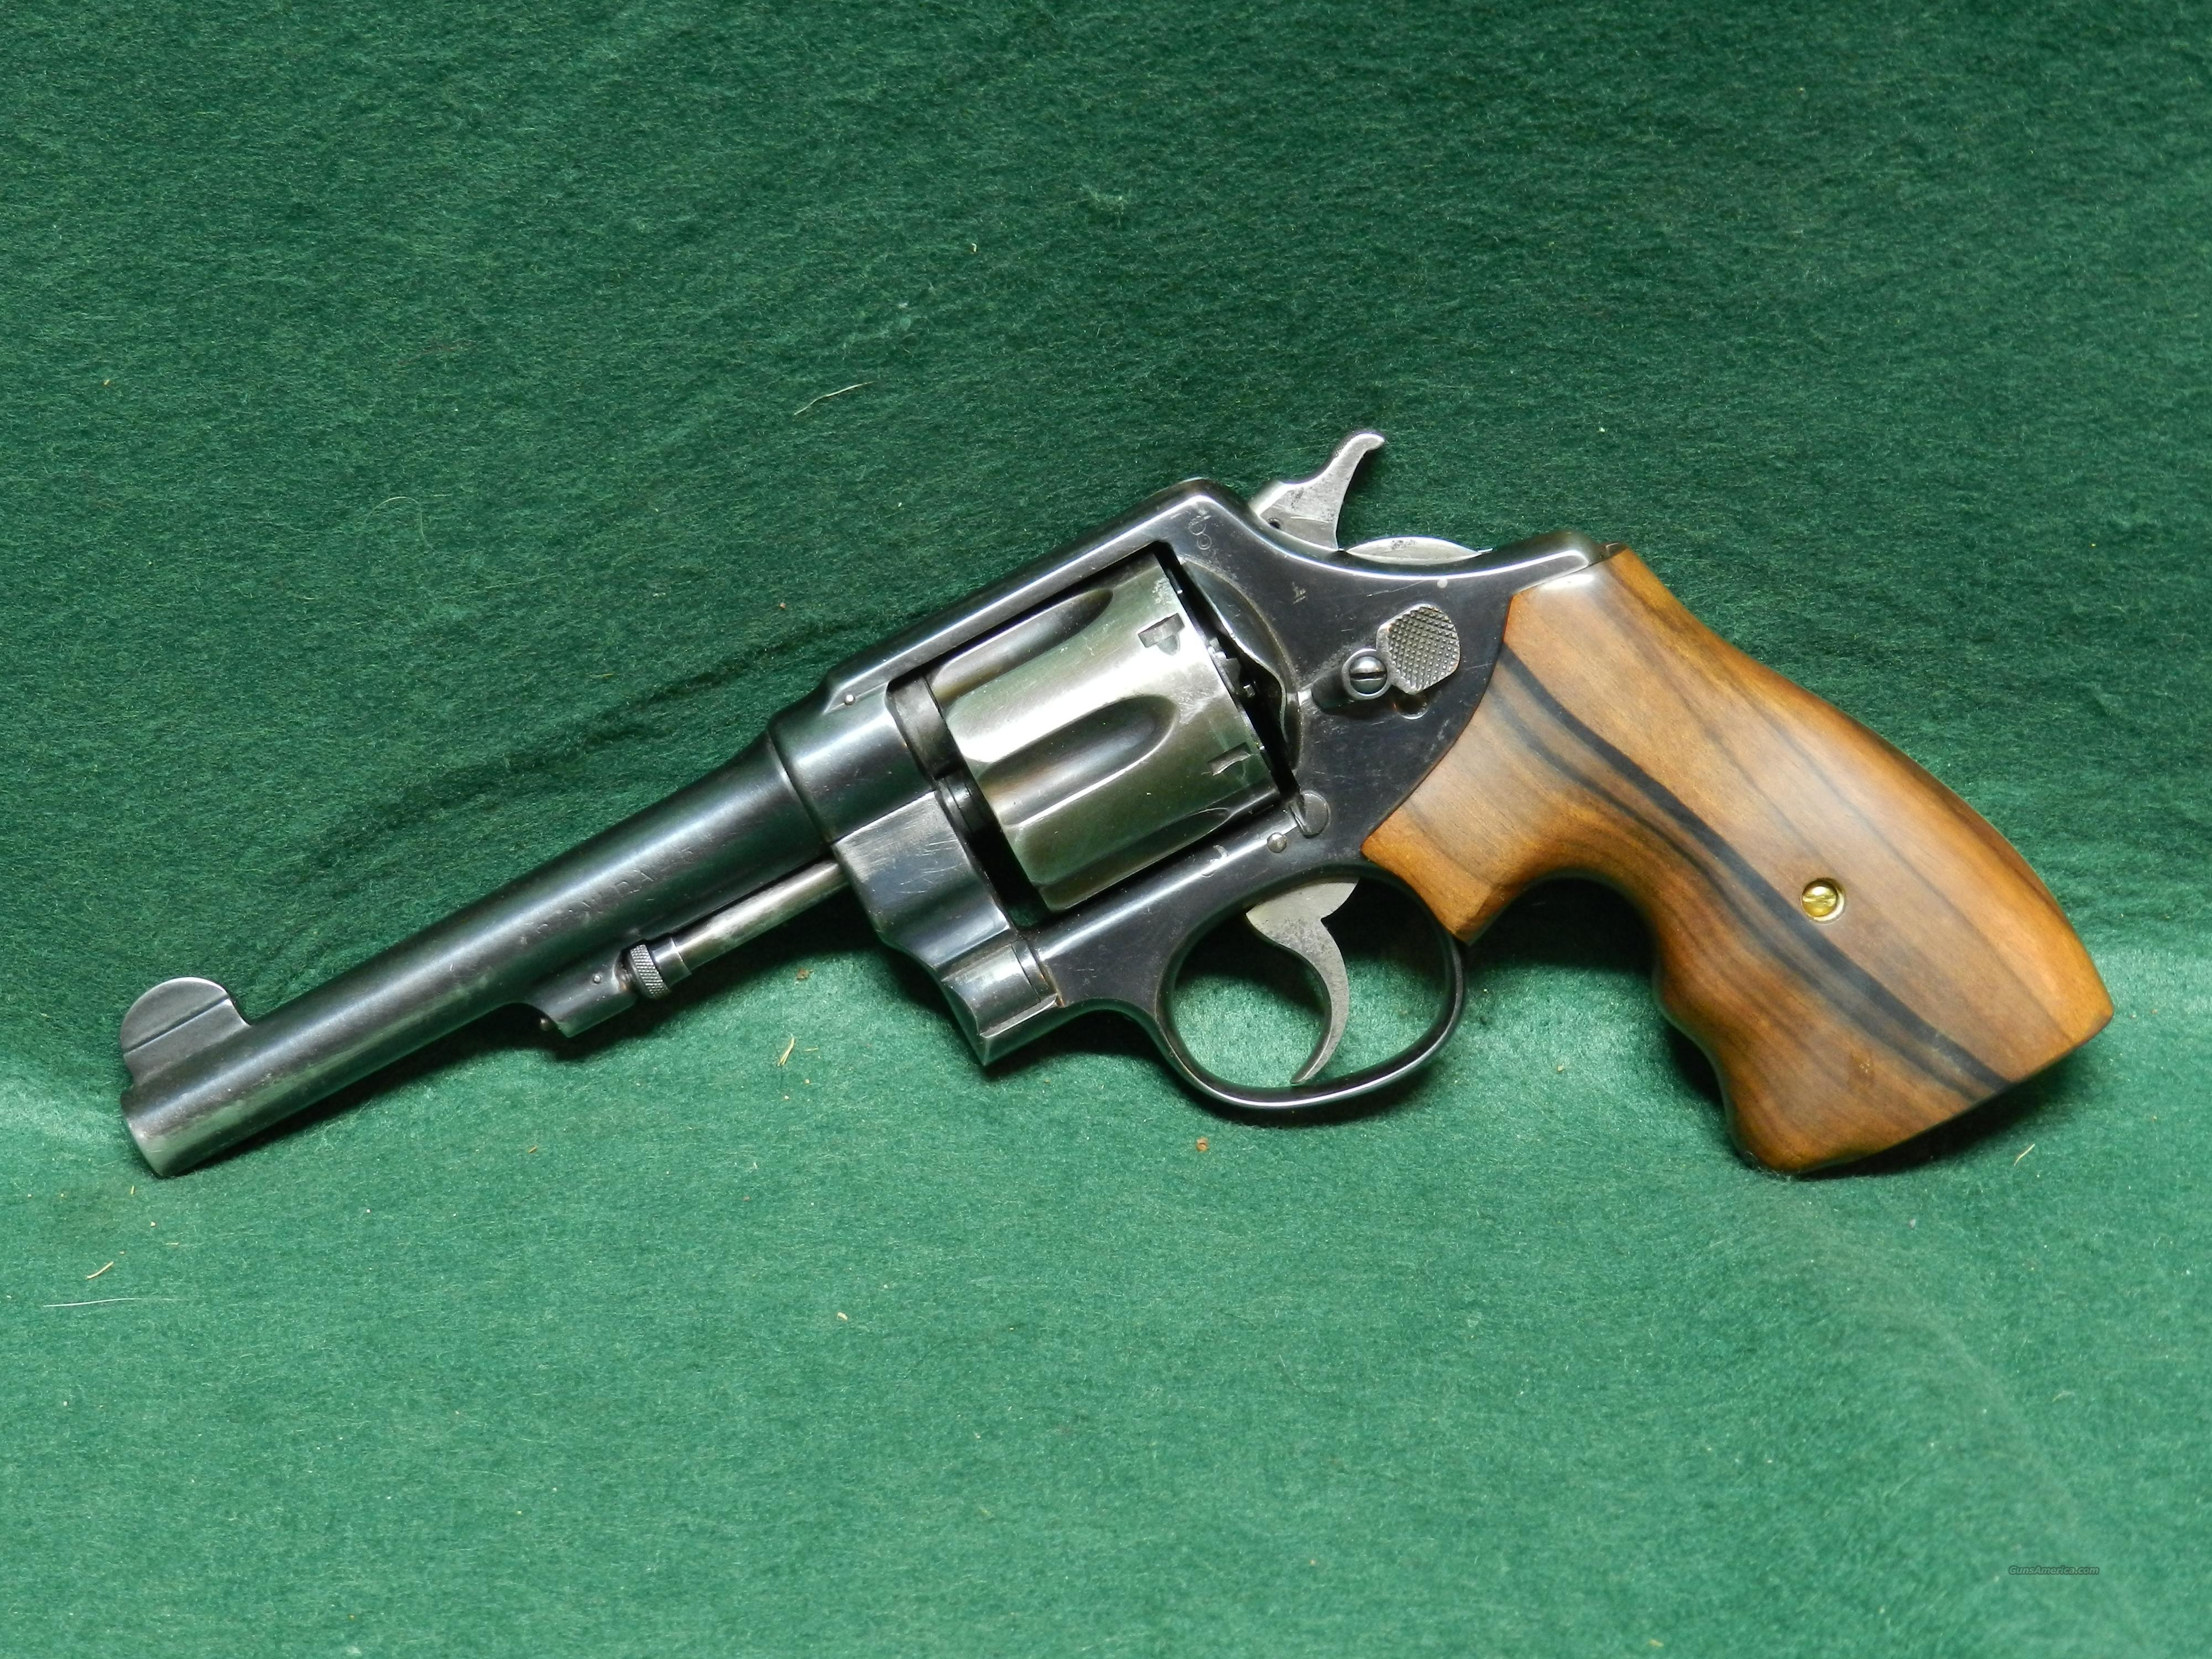 Smith & Wesson Model US 1917  Guns > Pistols > Smith & Wesson Revolvers > Full Frame Revolver